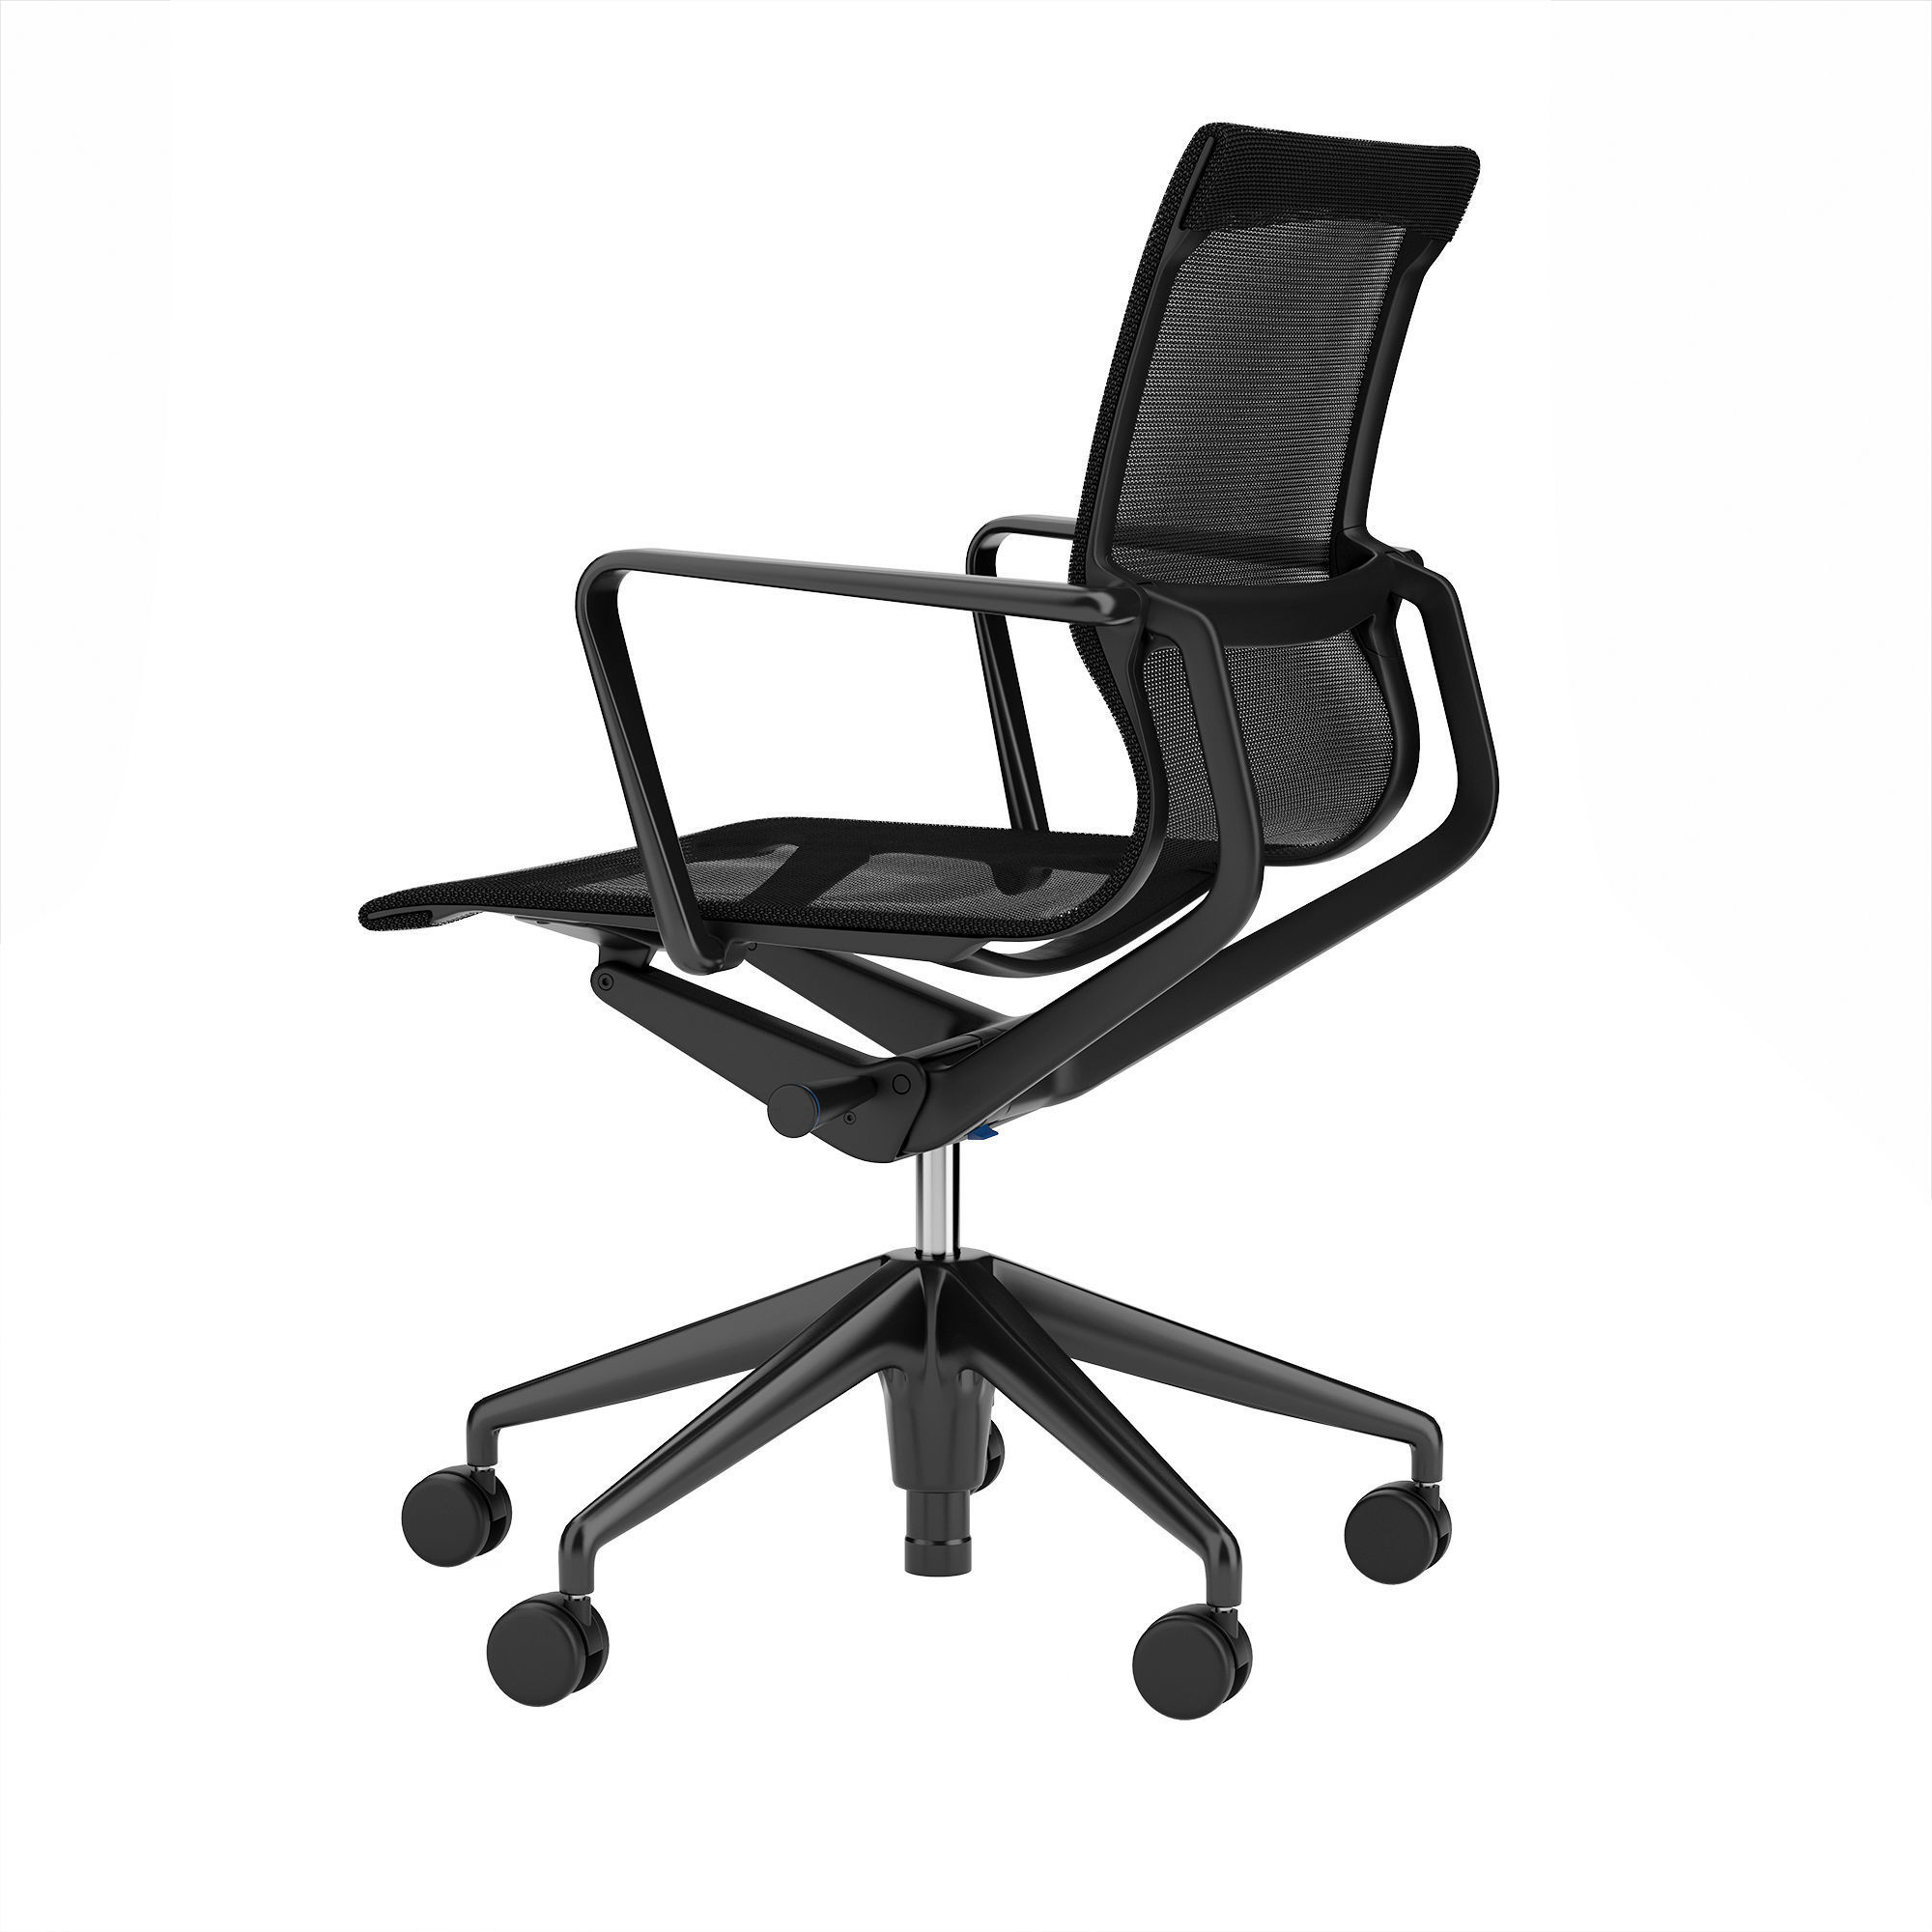 Vitra Office Chair Physix Office Chair By Vitra 3d Model